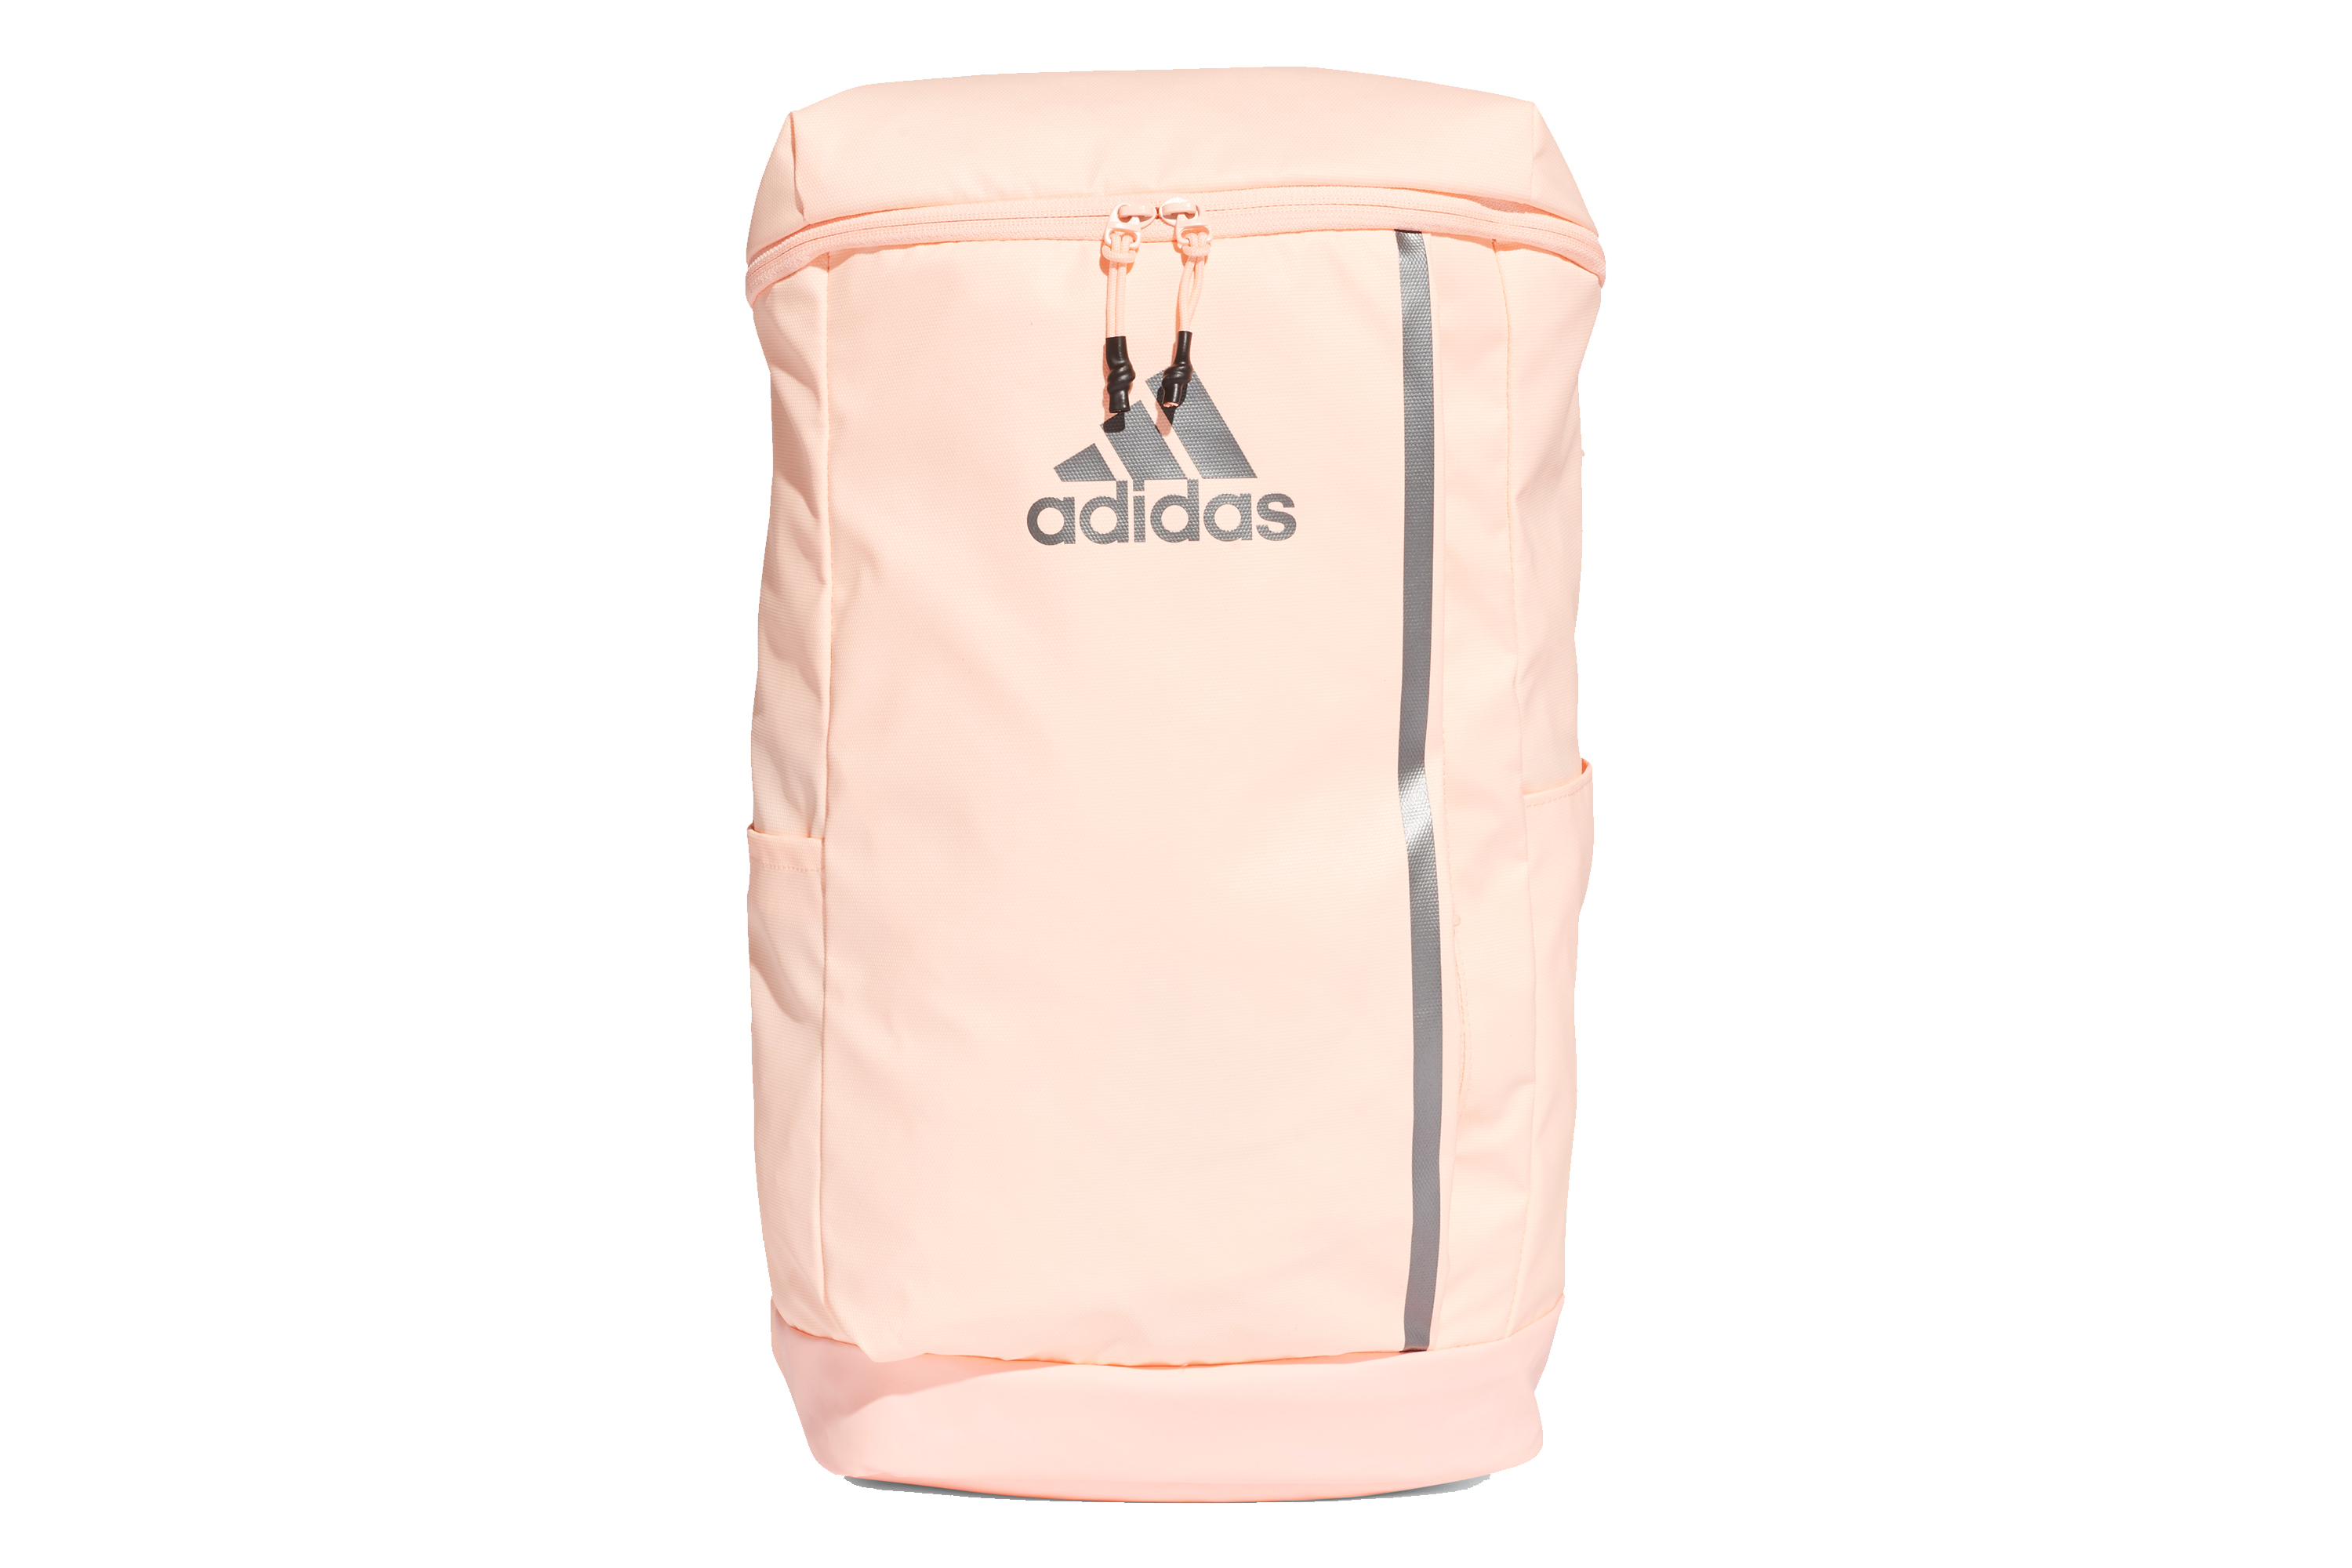 706491d4c635 7 of the best gym bags for carrying your kit in style - Lifestyle ...